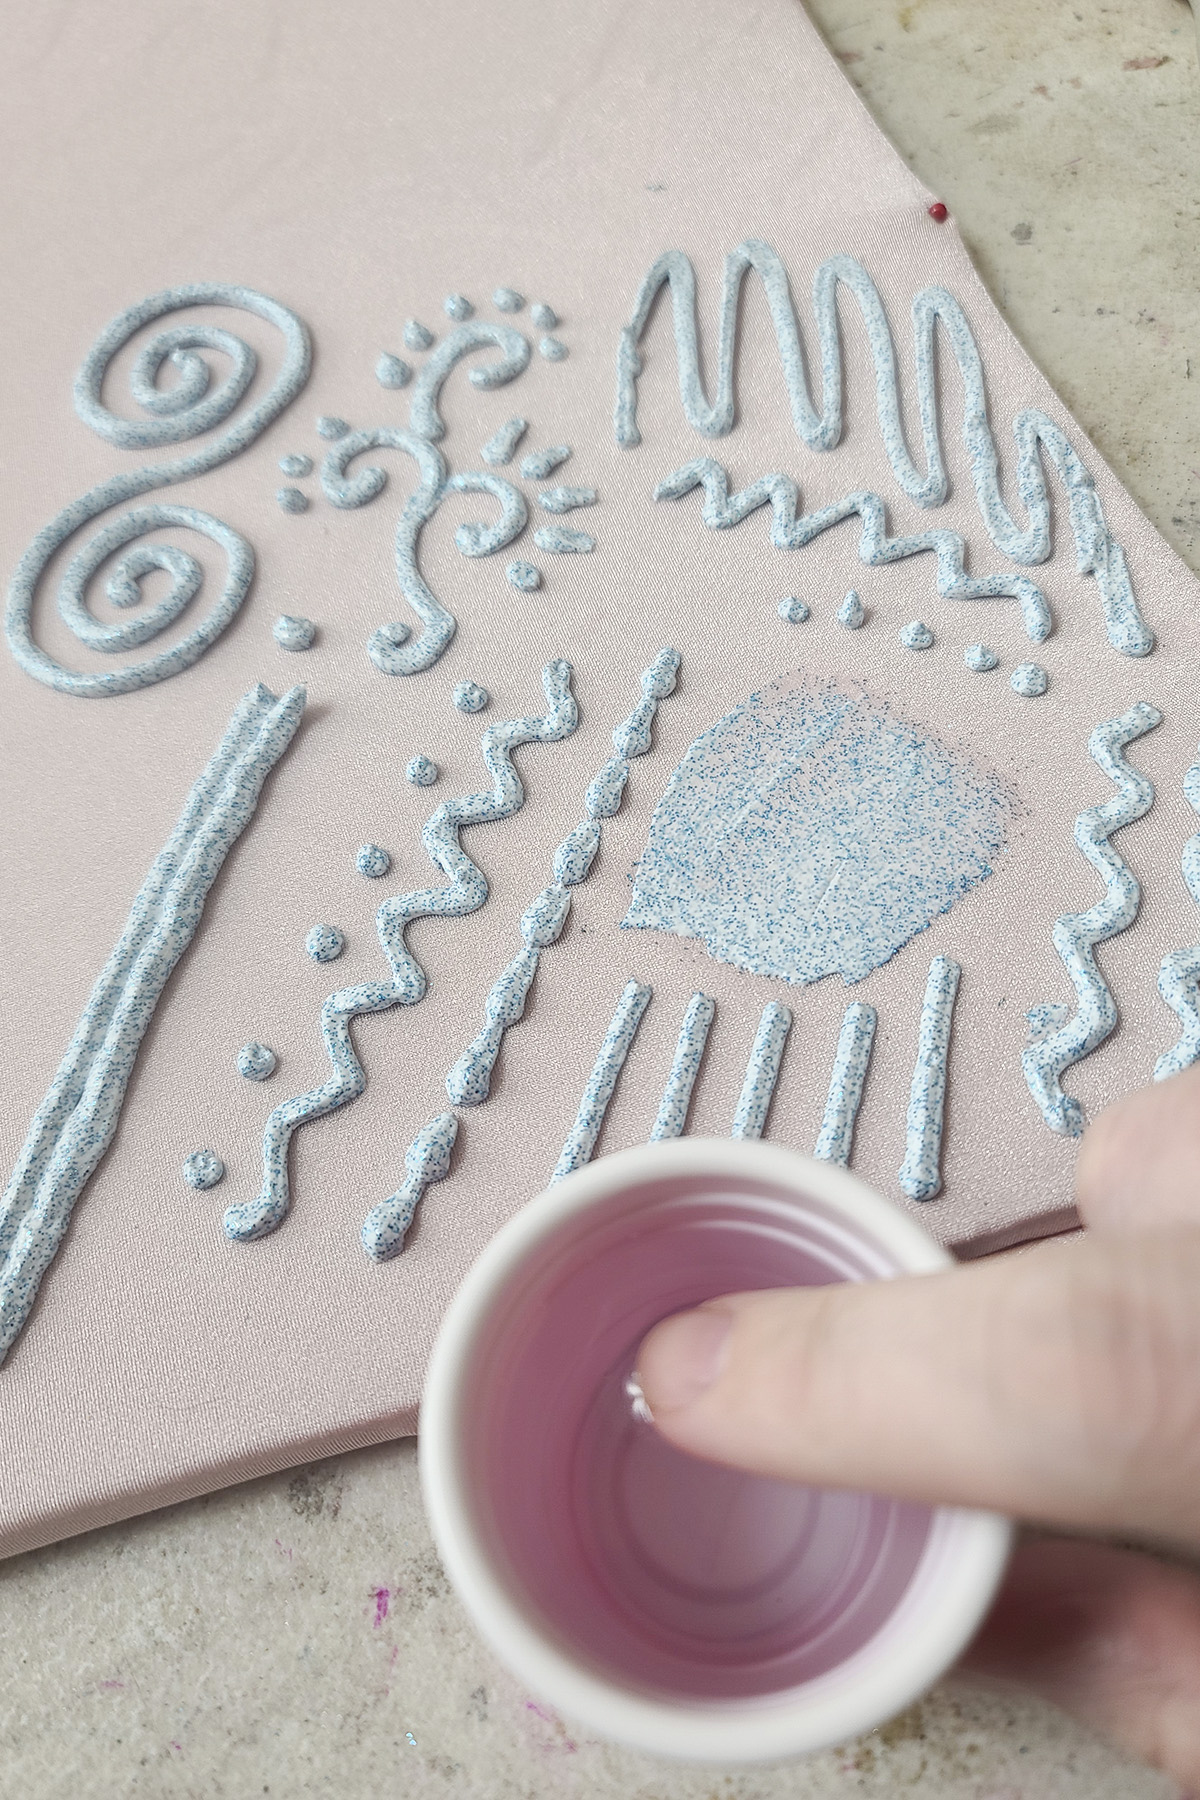 In front of a piece of stretched pink spandex with stretch glitter paint designs on it, a finger is being dipped into a small plastic cup of water.